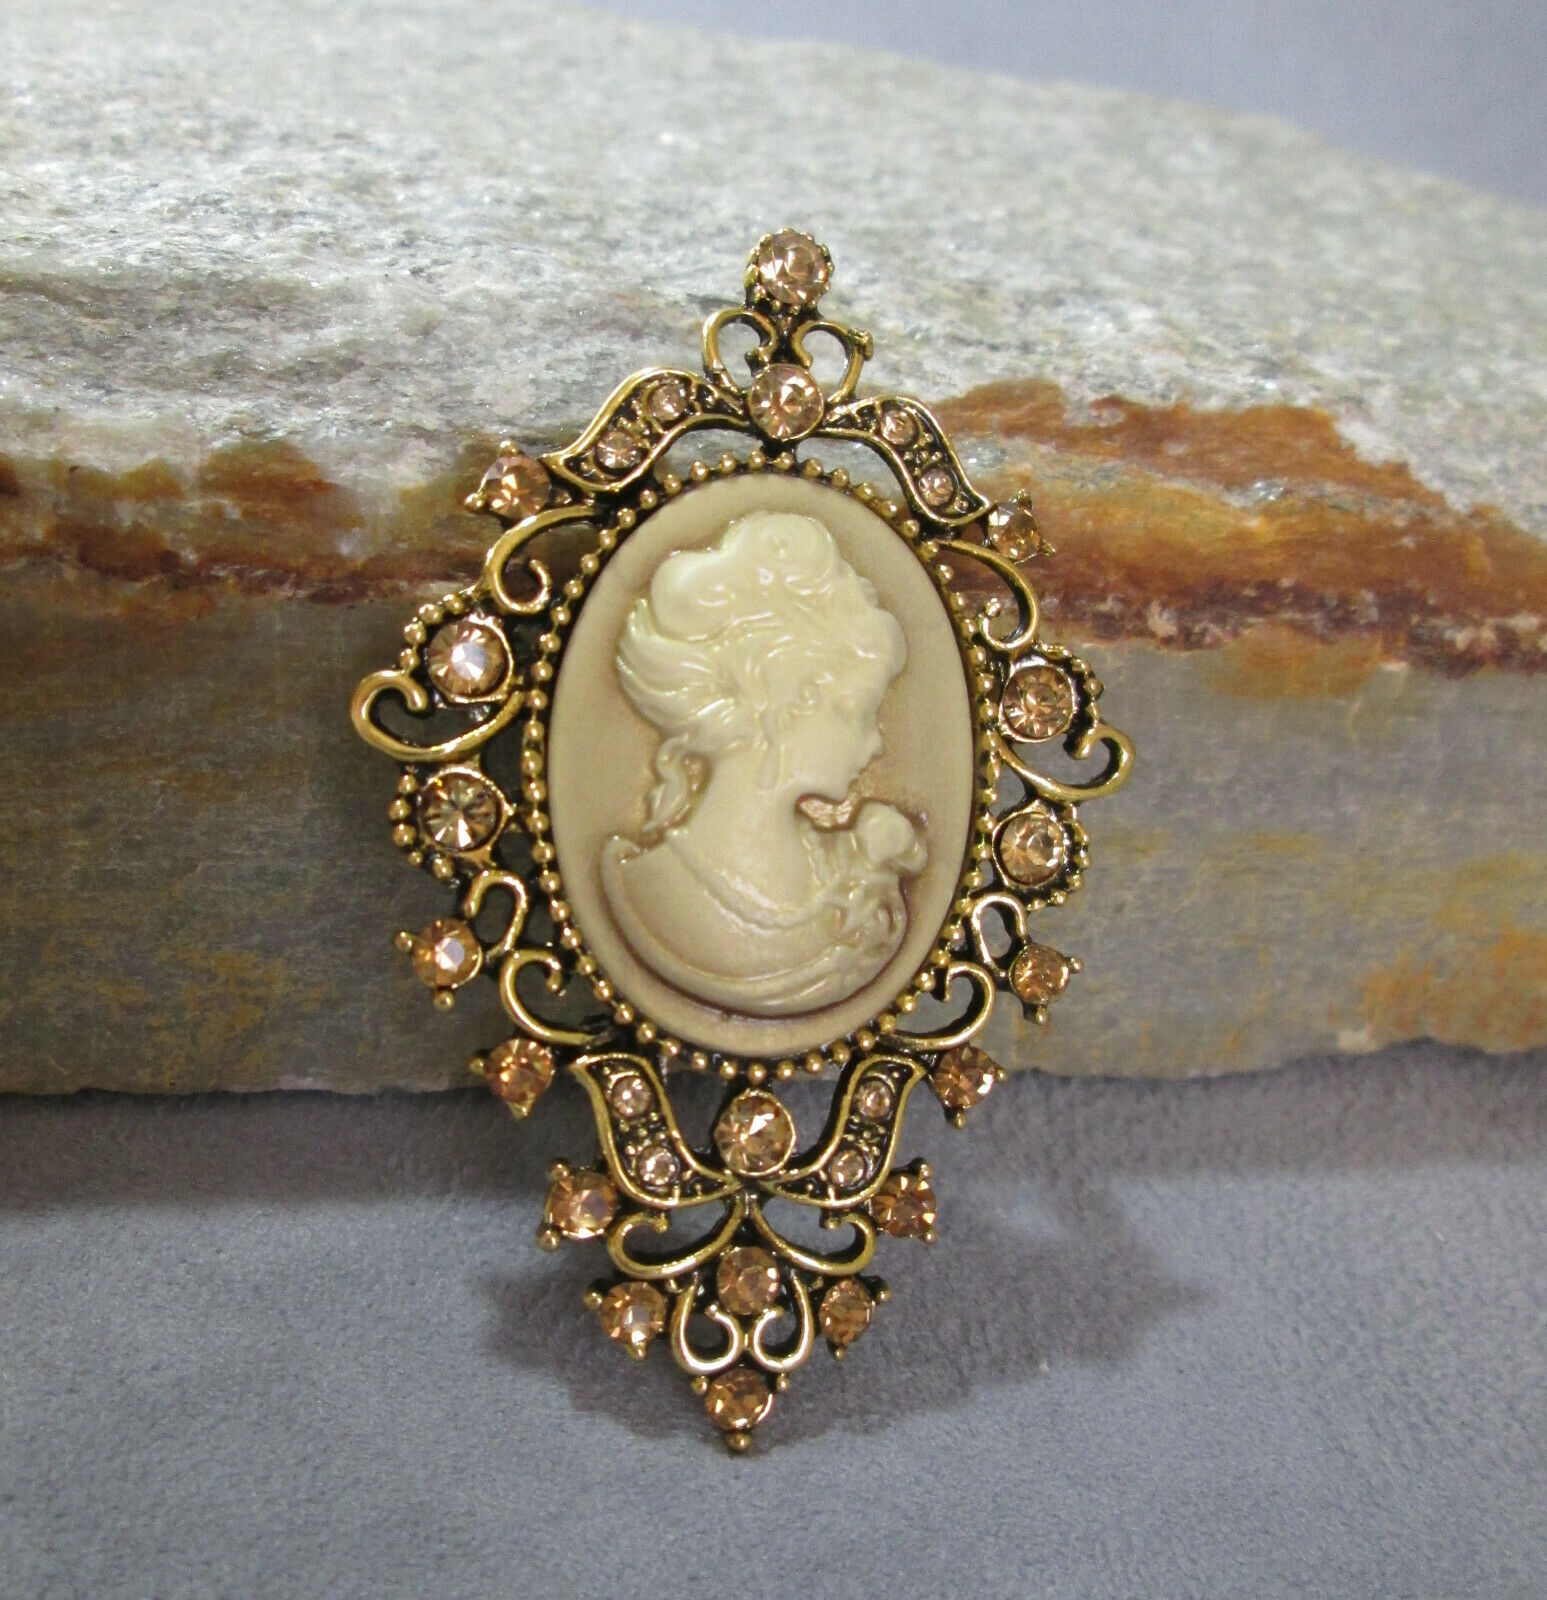 Primary image for Sparkling Cameo Brooch, Victorian Concept with Modern Sparkle, Style No. 02